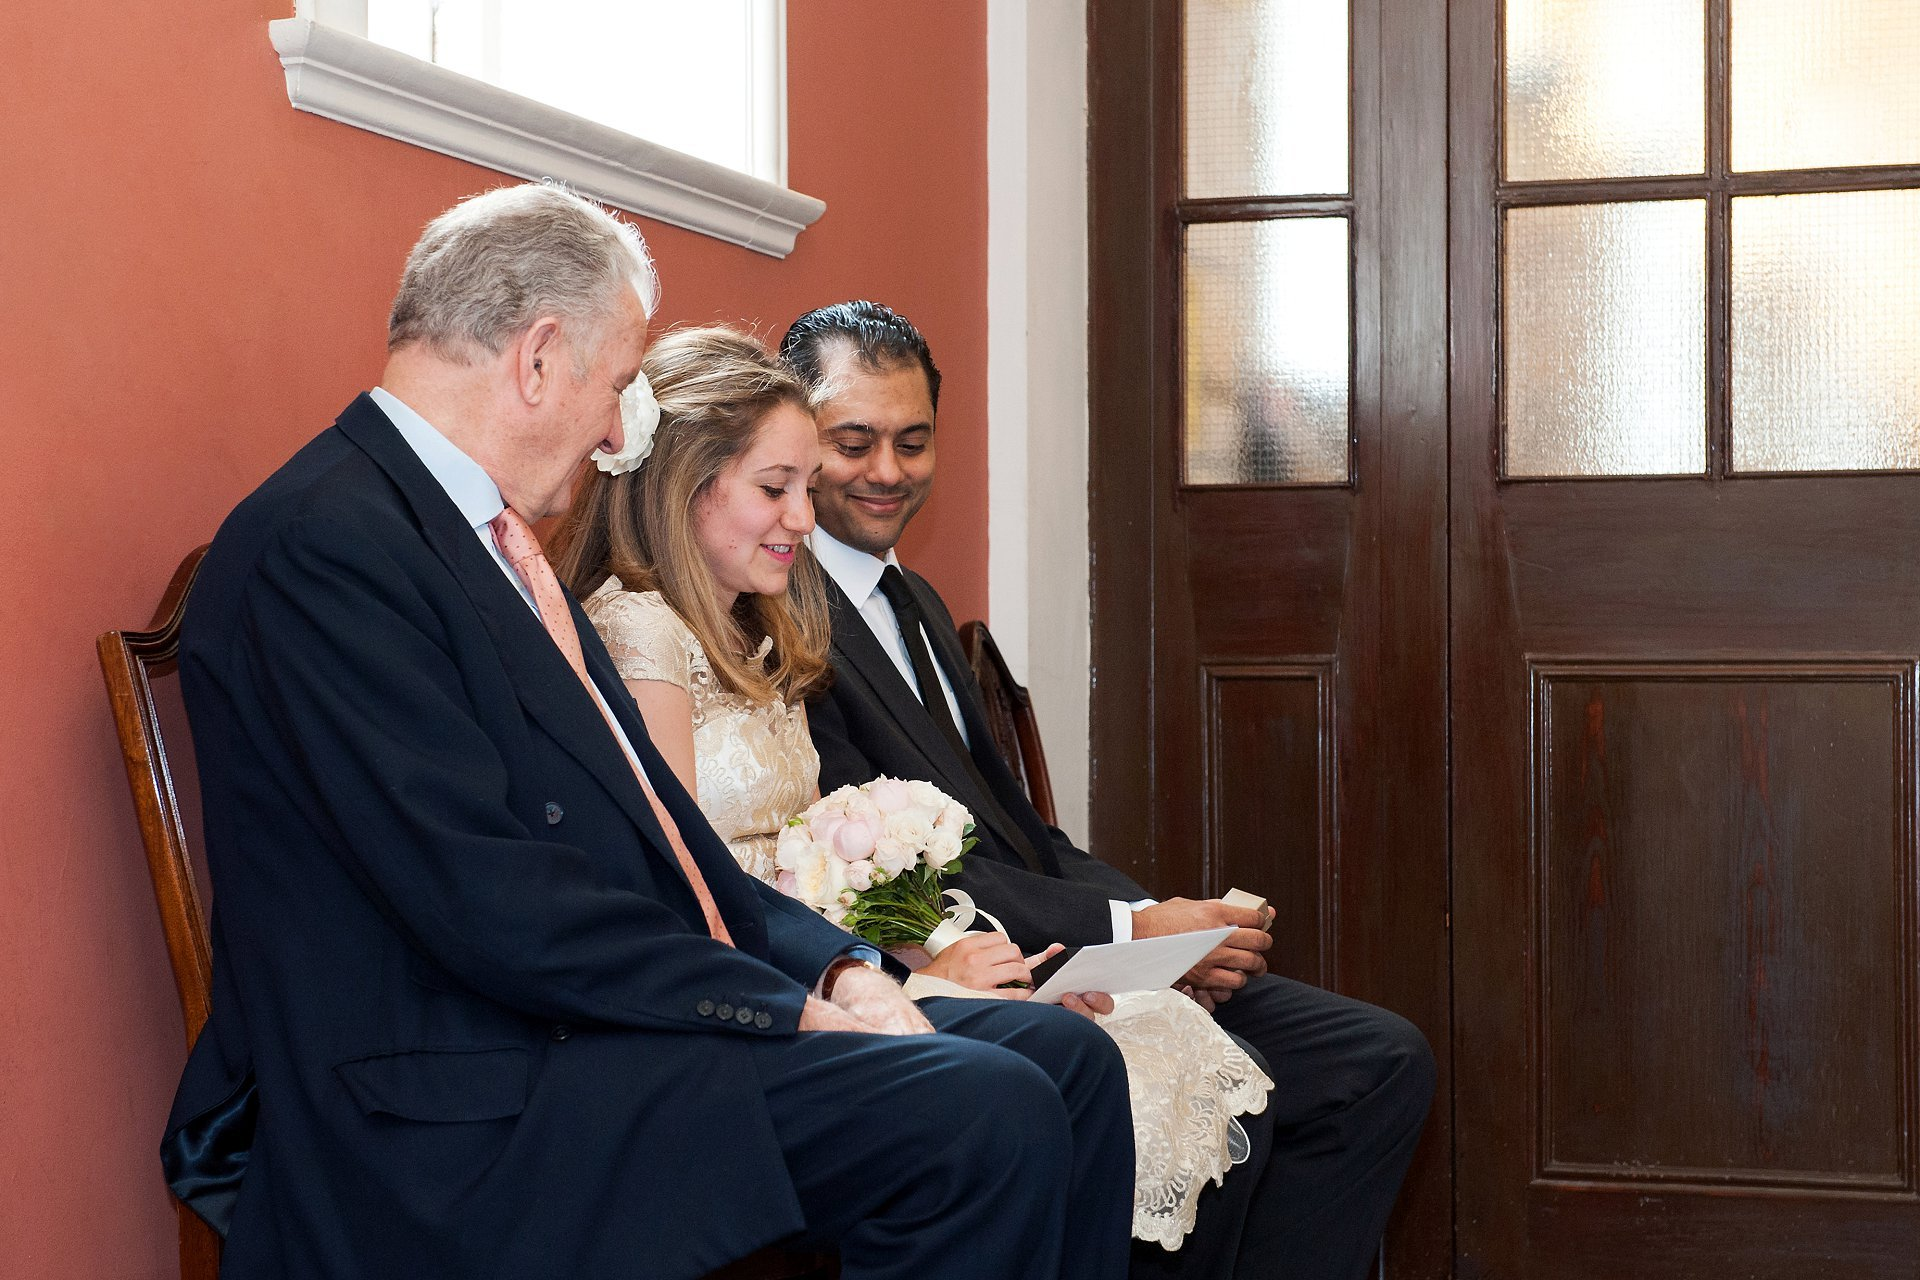 The bride and groom in the waiting room at Chelsea Register Office